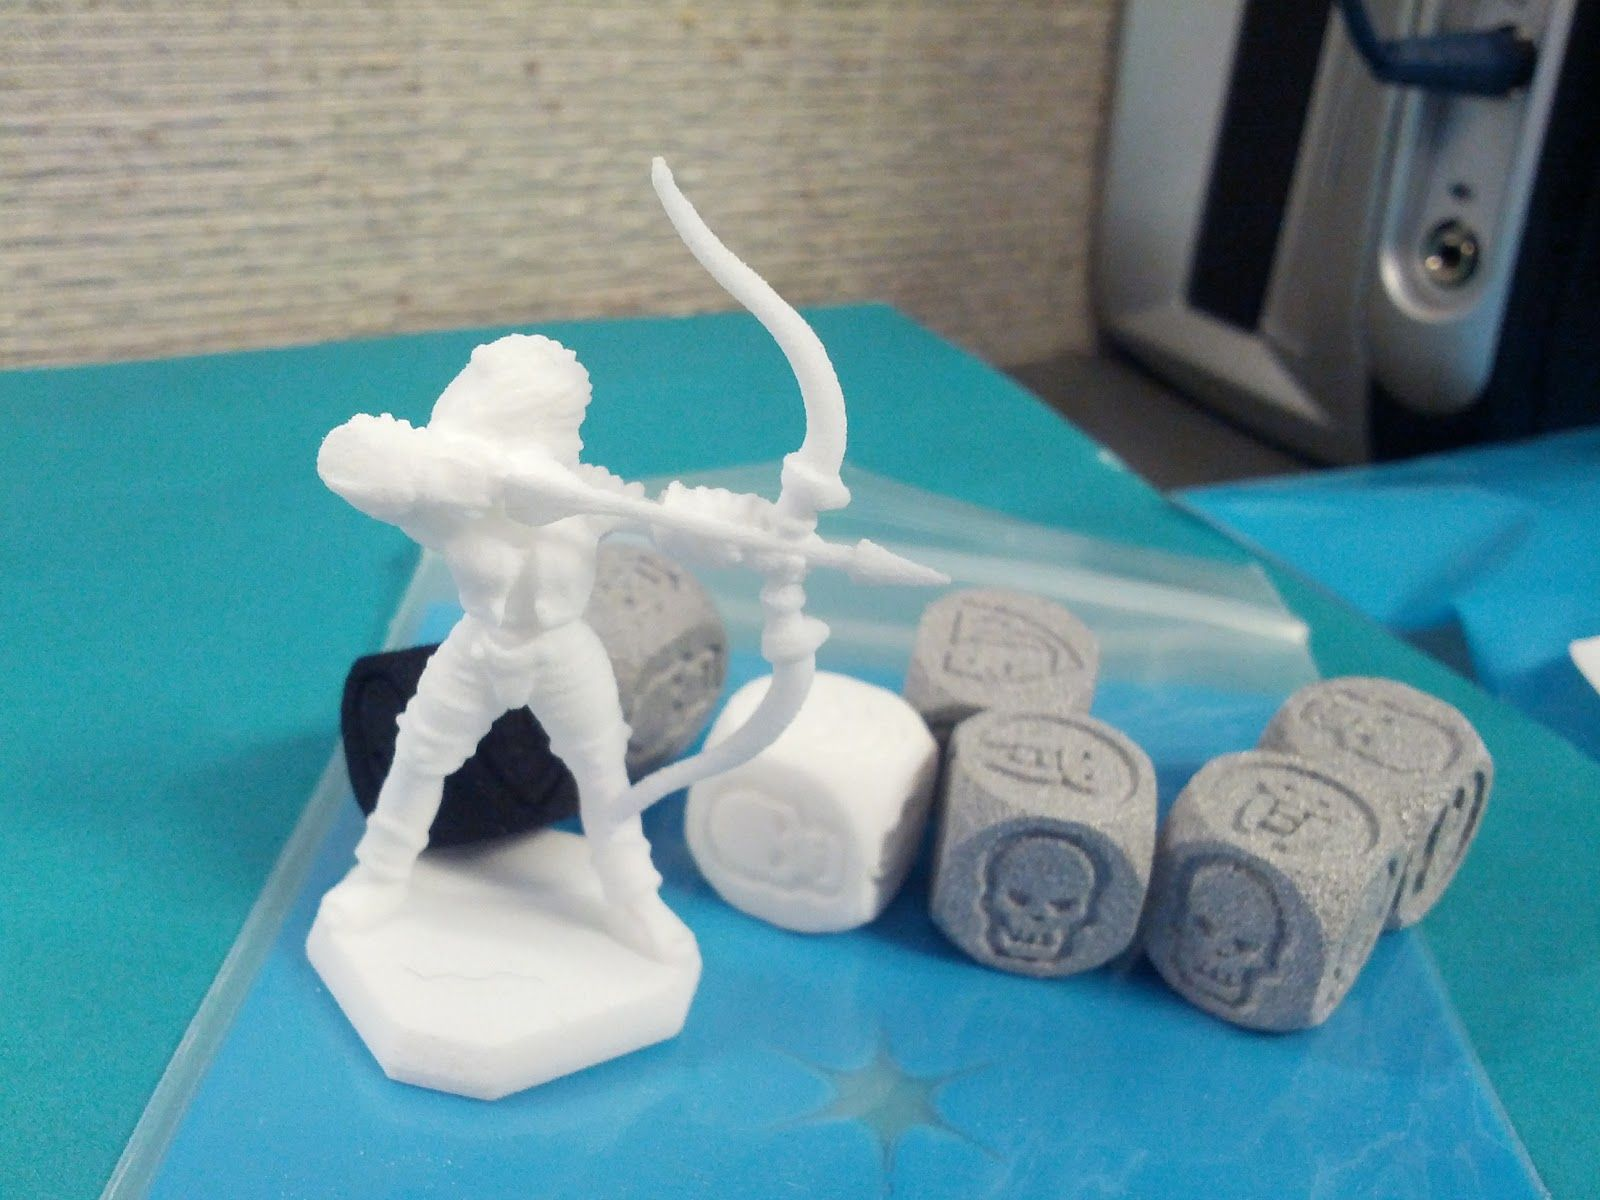 3d printed archer 3d printed creations pinterest 3d Where can i print 3d objects